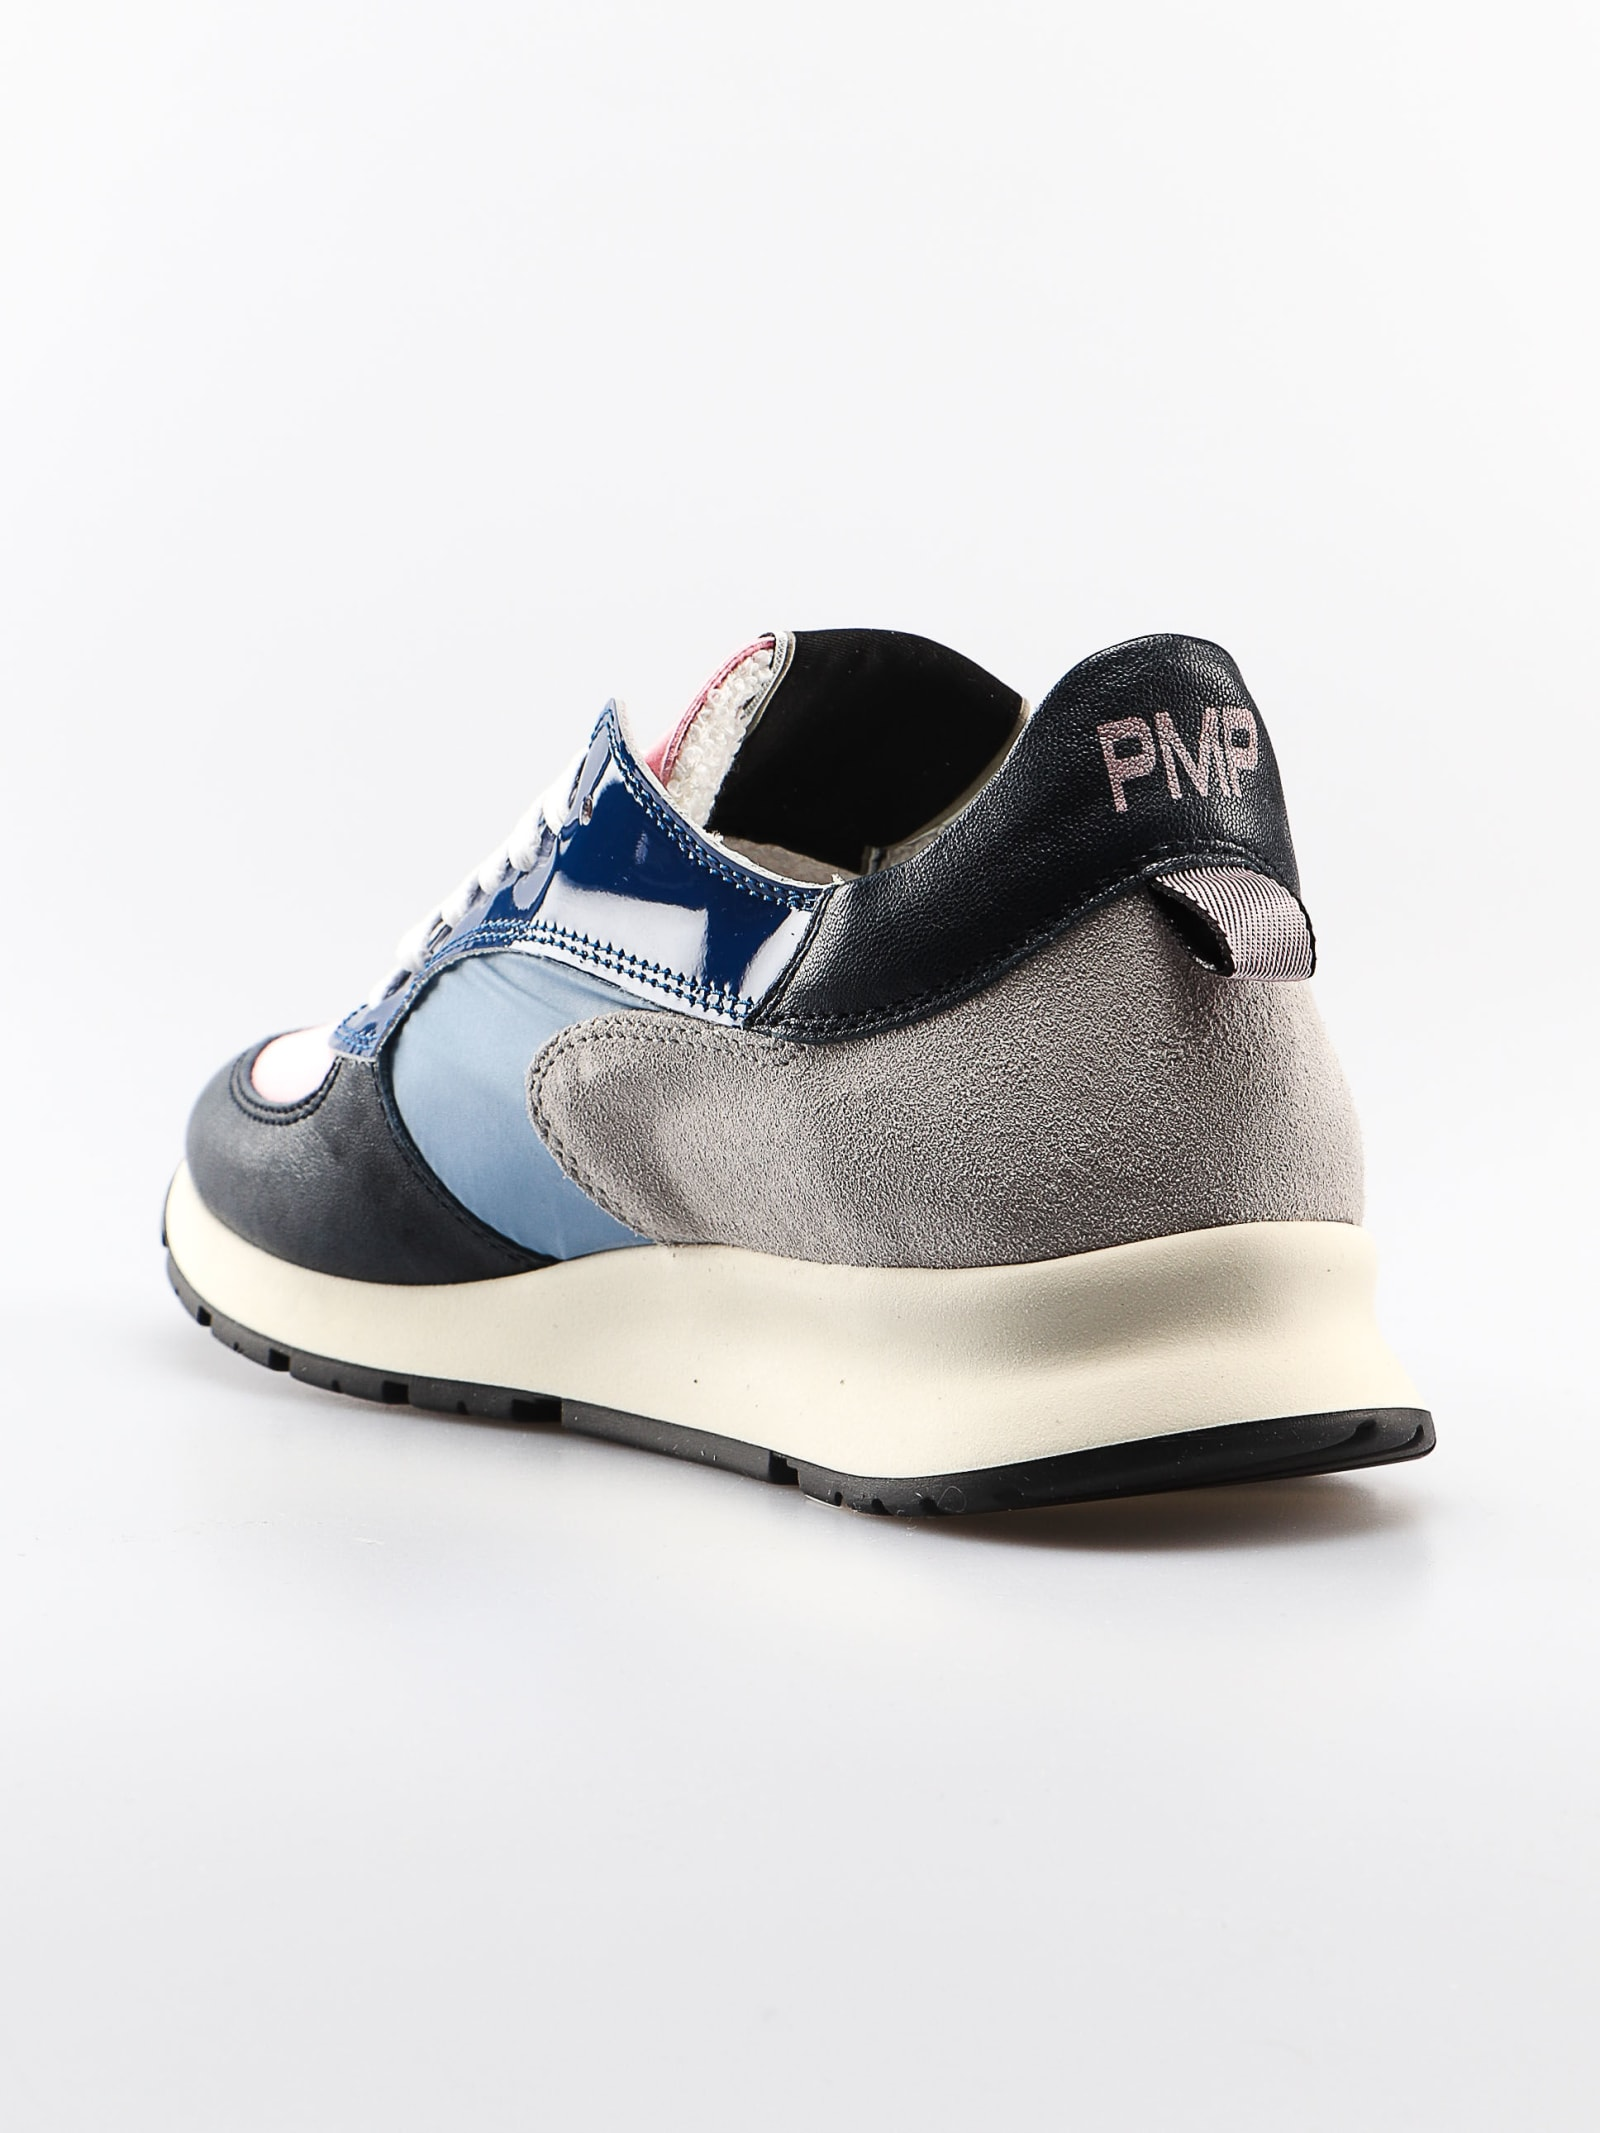 Sneakers Model Philippe Sneakers Philippe Model Model Montecarlo Montecarlo Philippe 0wPOkn